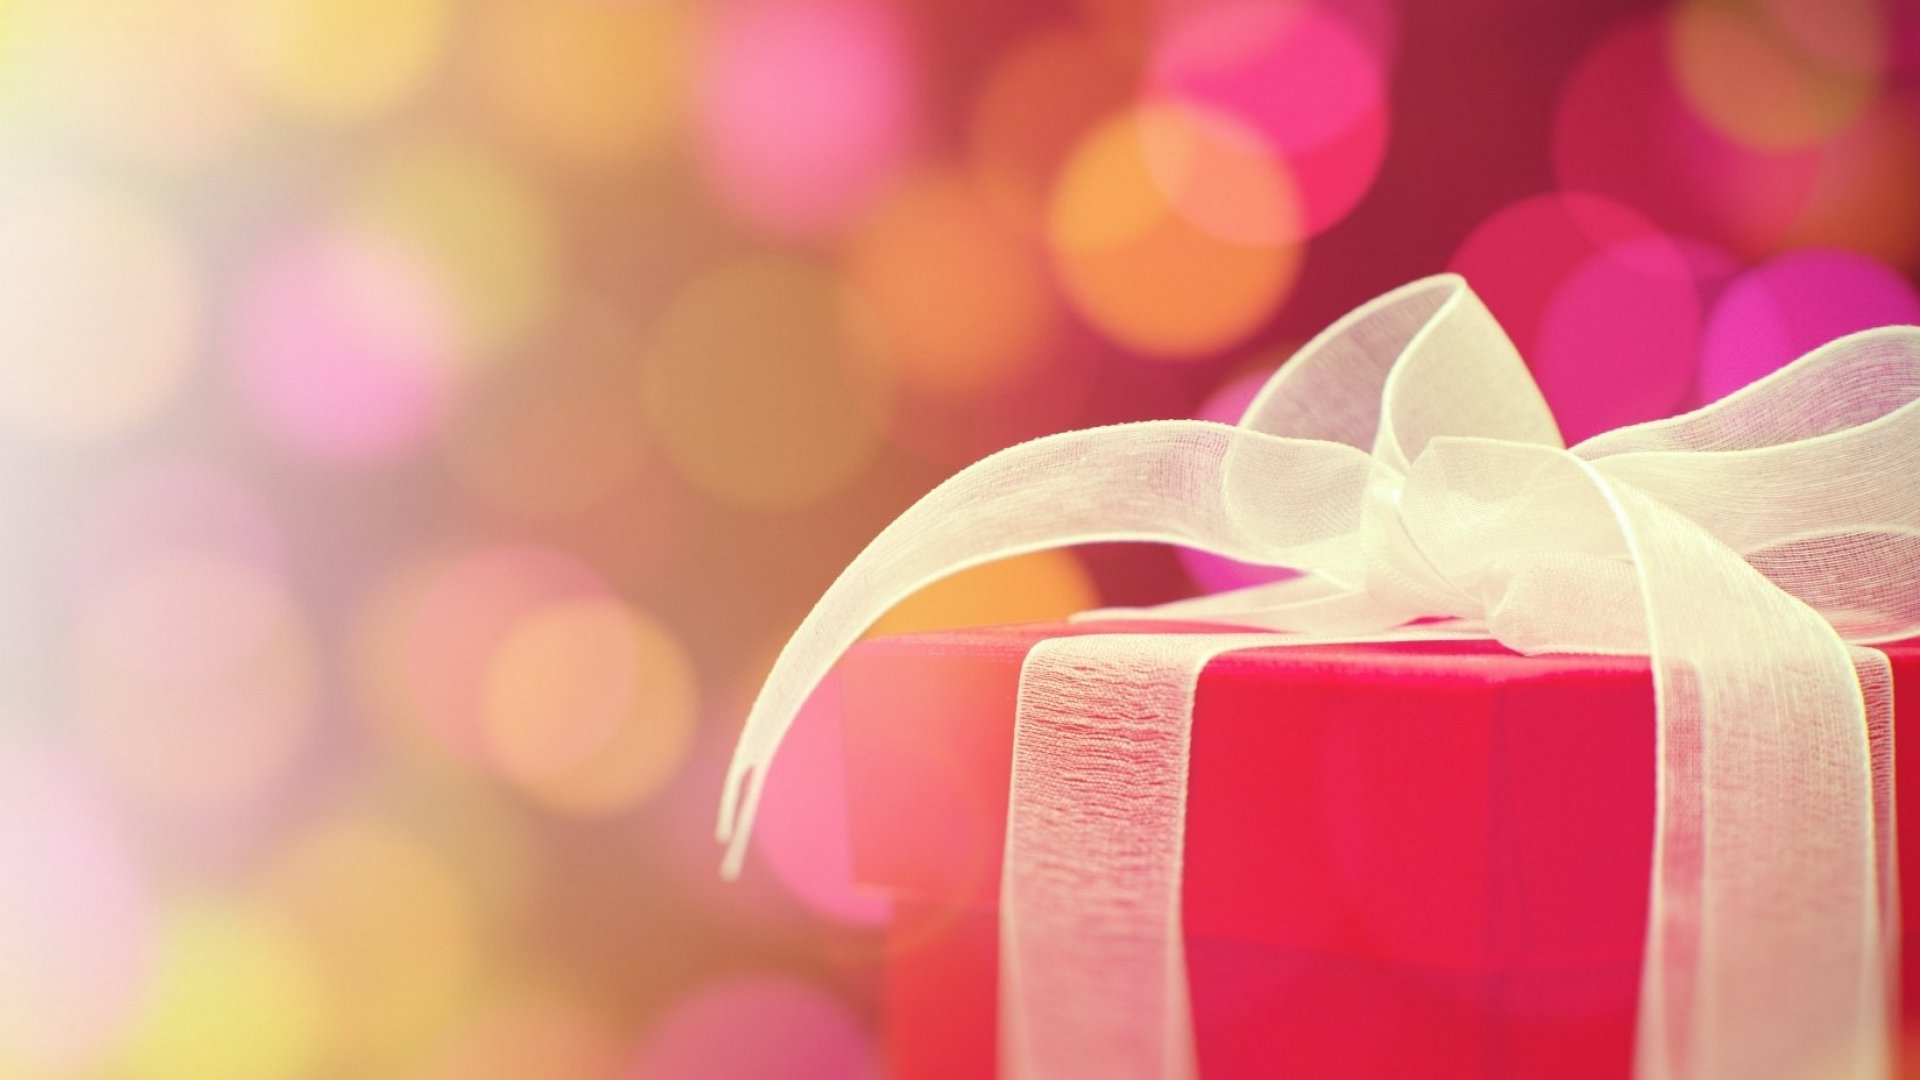 5 Questions That Will Help You Pick the Perfect Gift for Almost Anyone